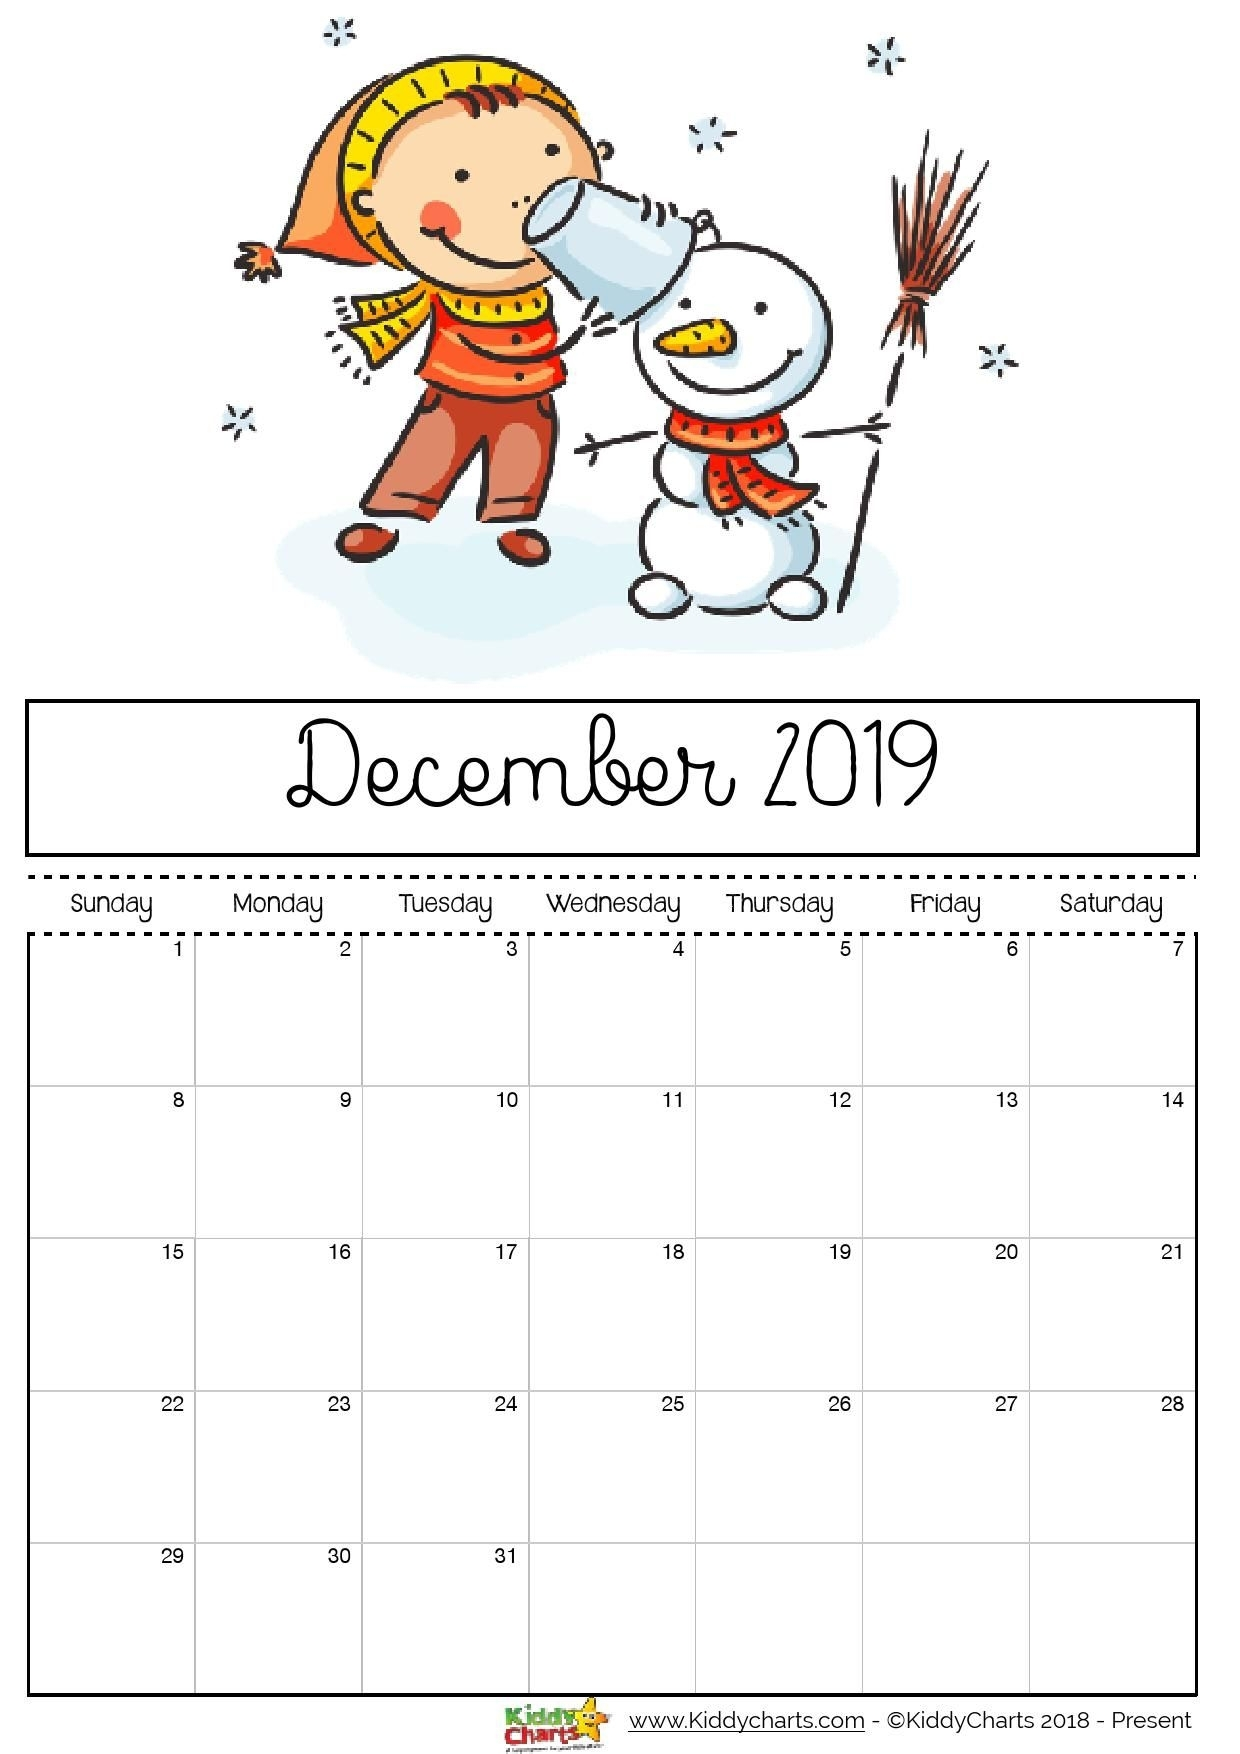 Check Out Our Fantastic Free 2019 Calendar For Your Child'S with regard to Free Kindergarten Calendar Template 2019